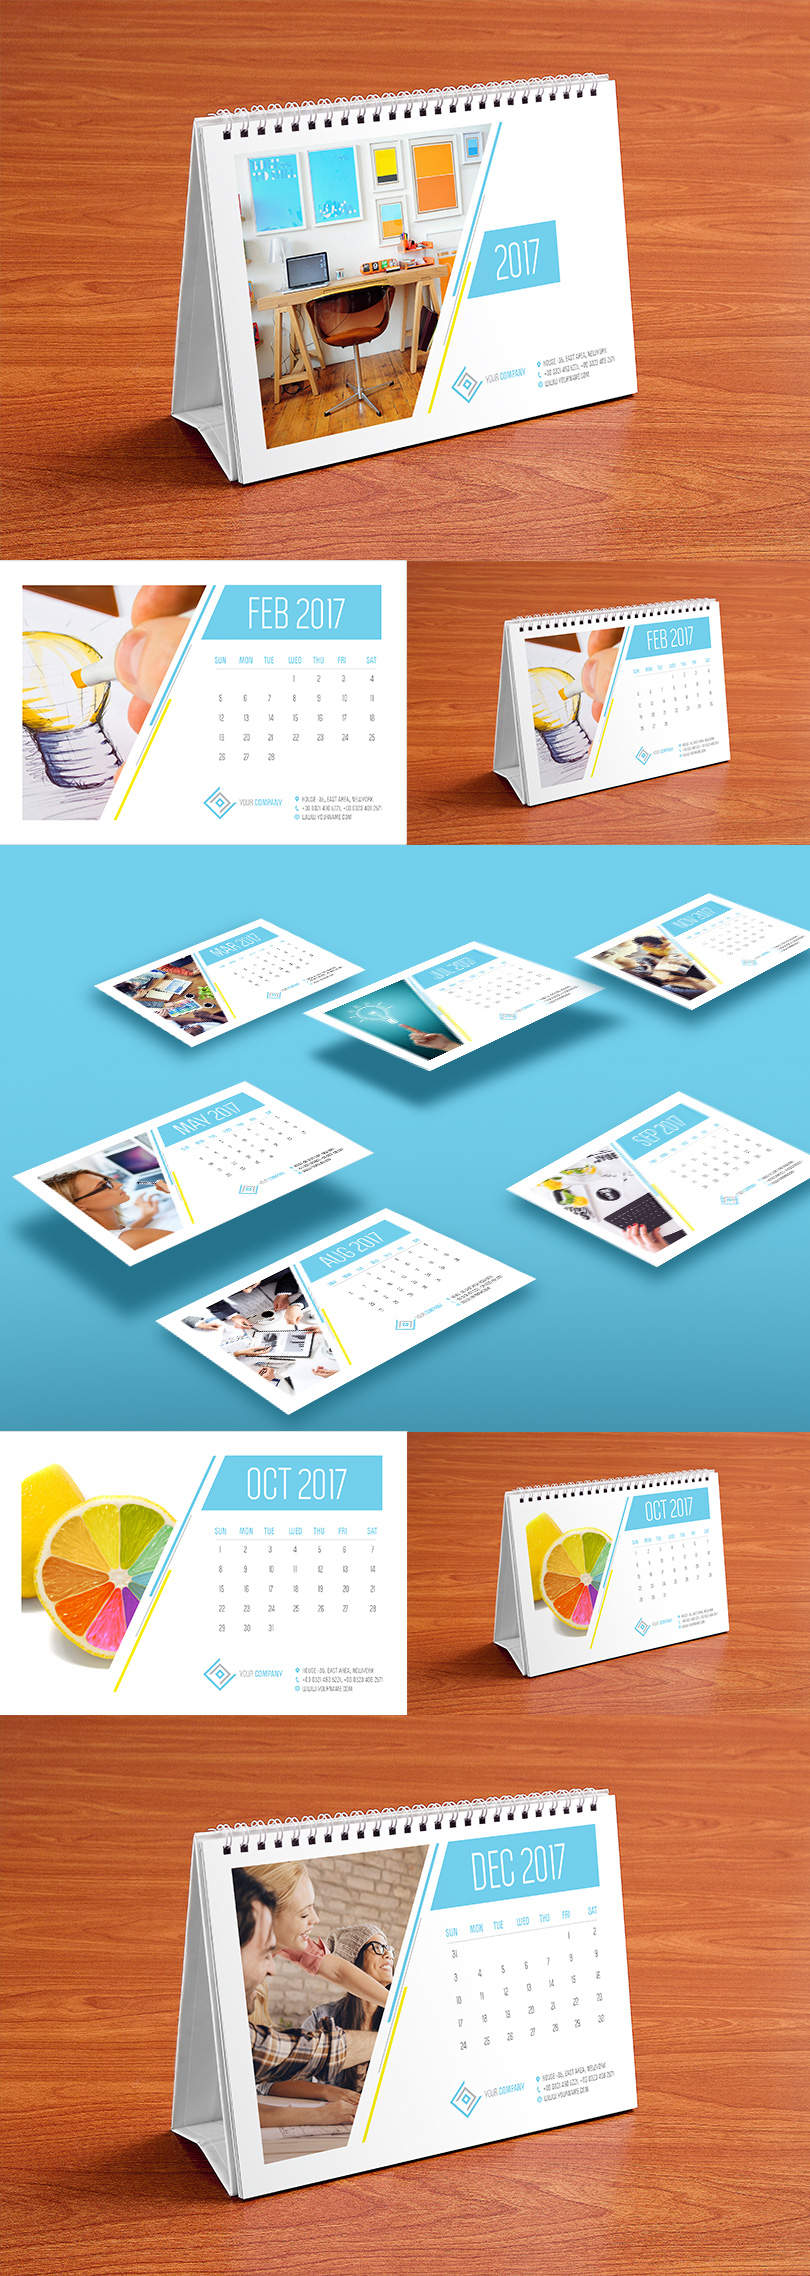 Calendar Design Software Download : Table calendar design template and mock up psd